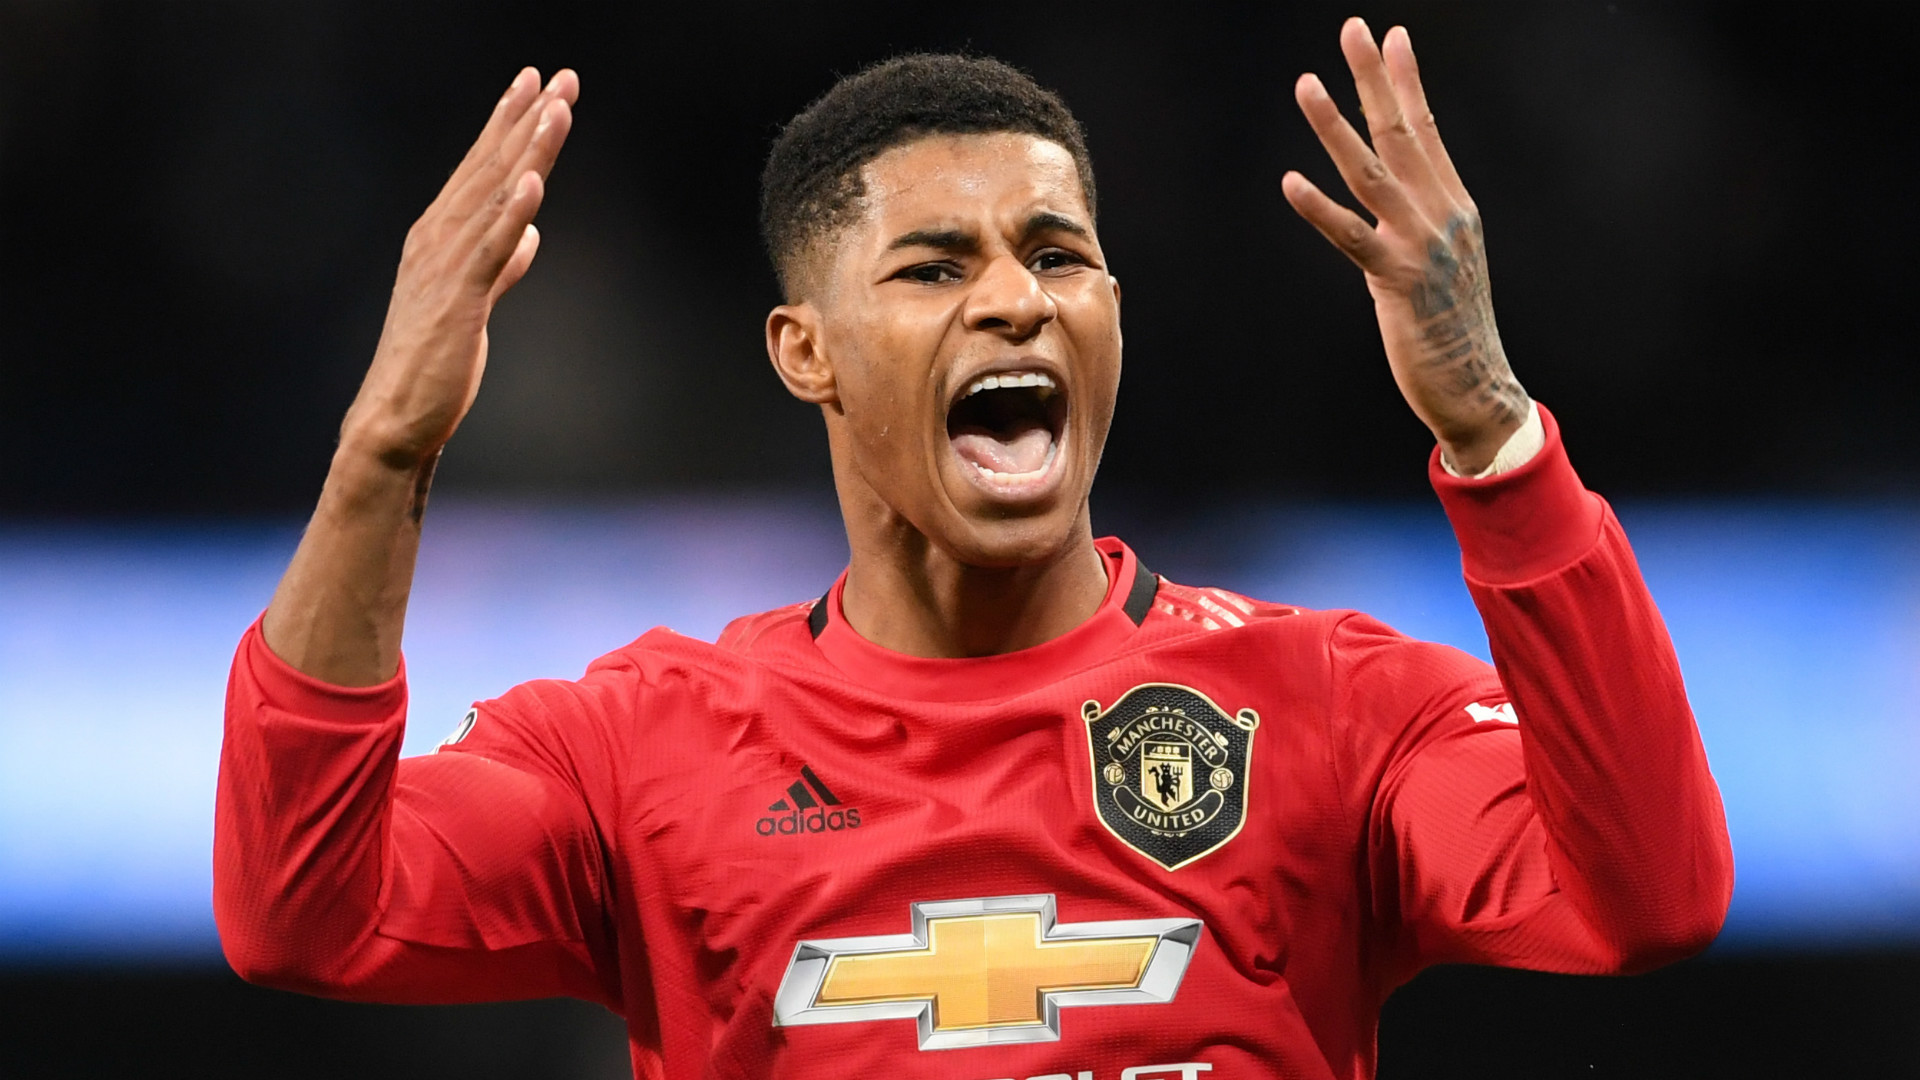 Manchester United and England forward Marcus Rashford said on Tuesday he has formed a task force with some major food brands to help tackle hunger among children. The 22-year-old had earned widespread praise after he successfully campaigned for school food vouchers to be provided over the summer holidays in Britain. He had, in the course […]